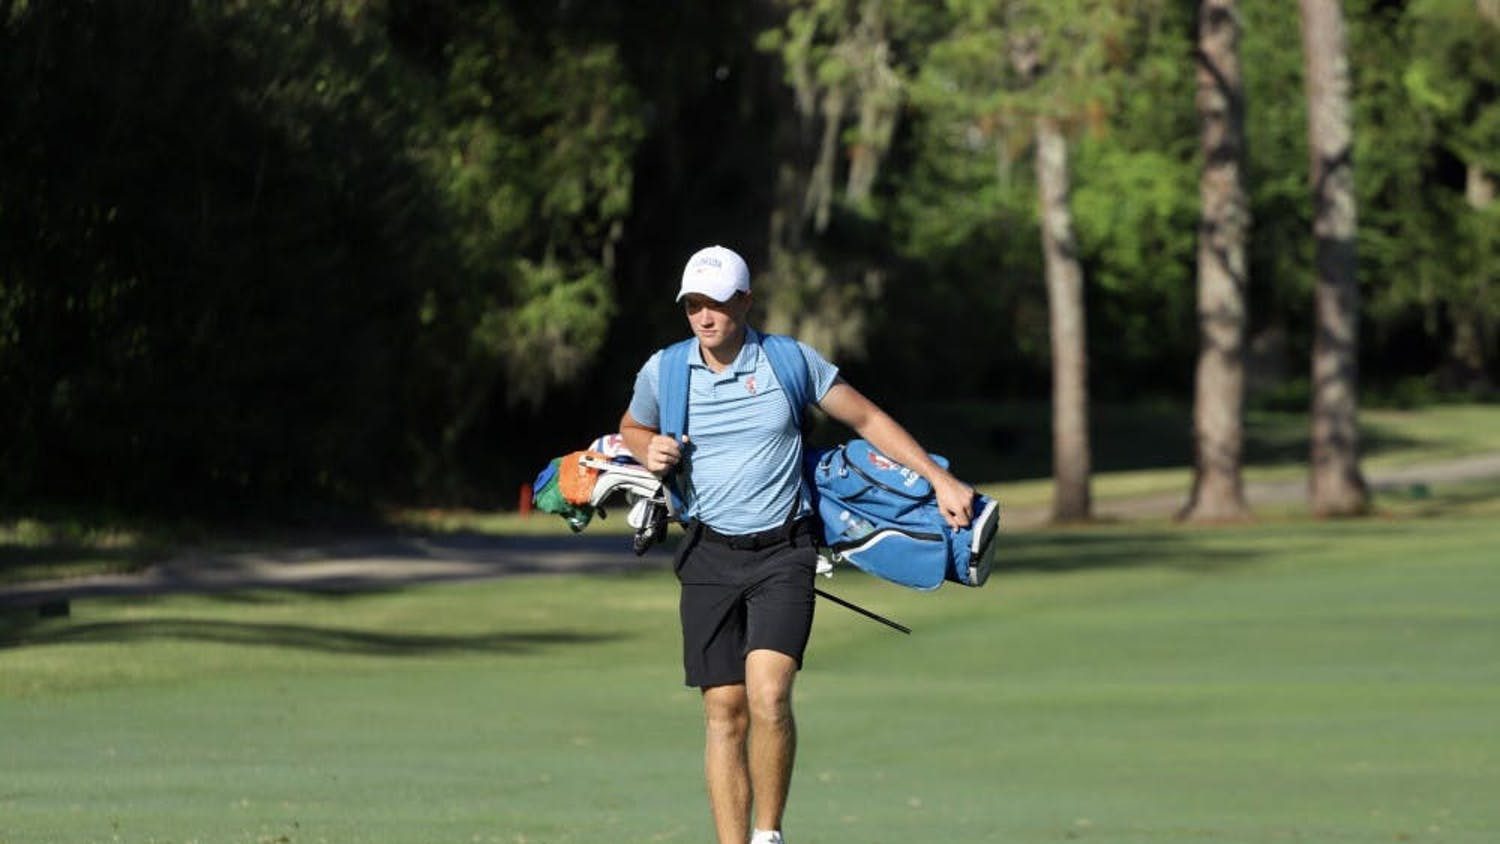 The Gators will kick off the season in Jacksonville at the Timuquana Collegiate Jan. 25-26.